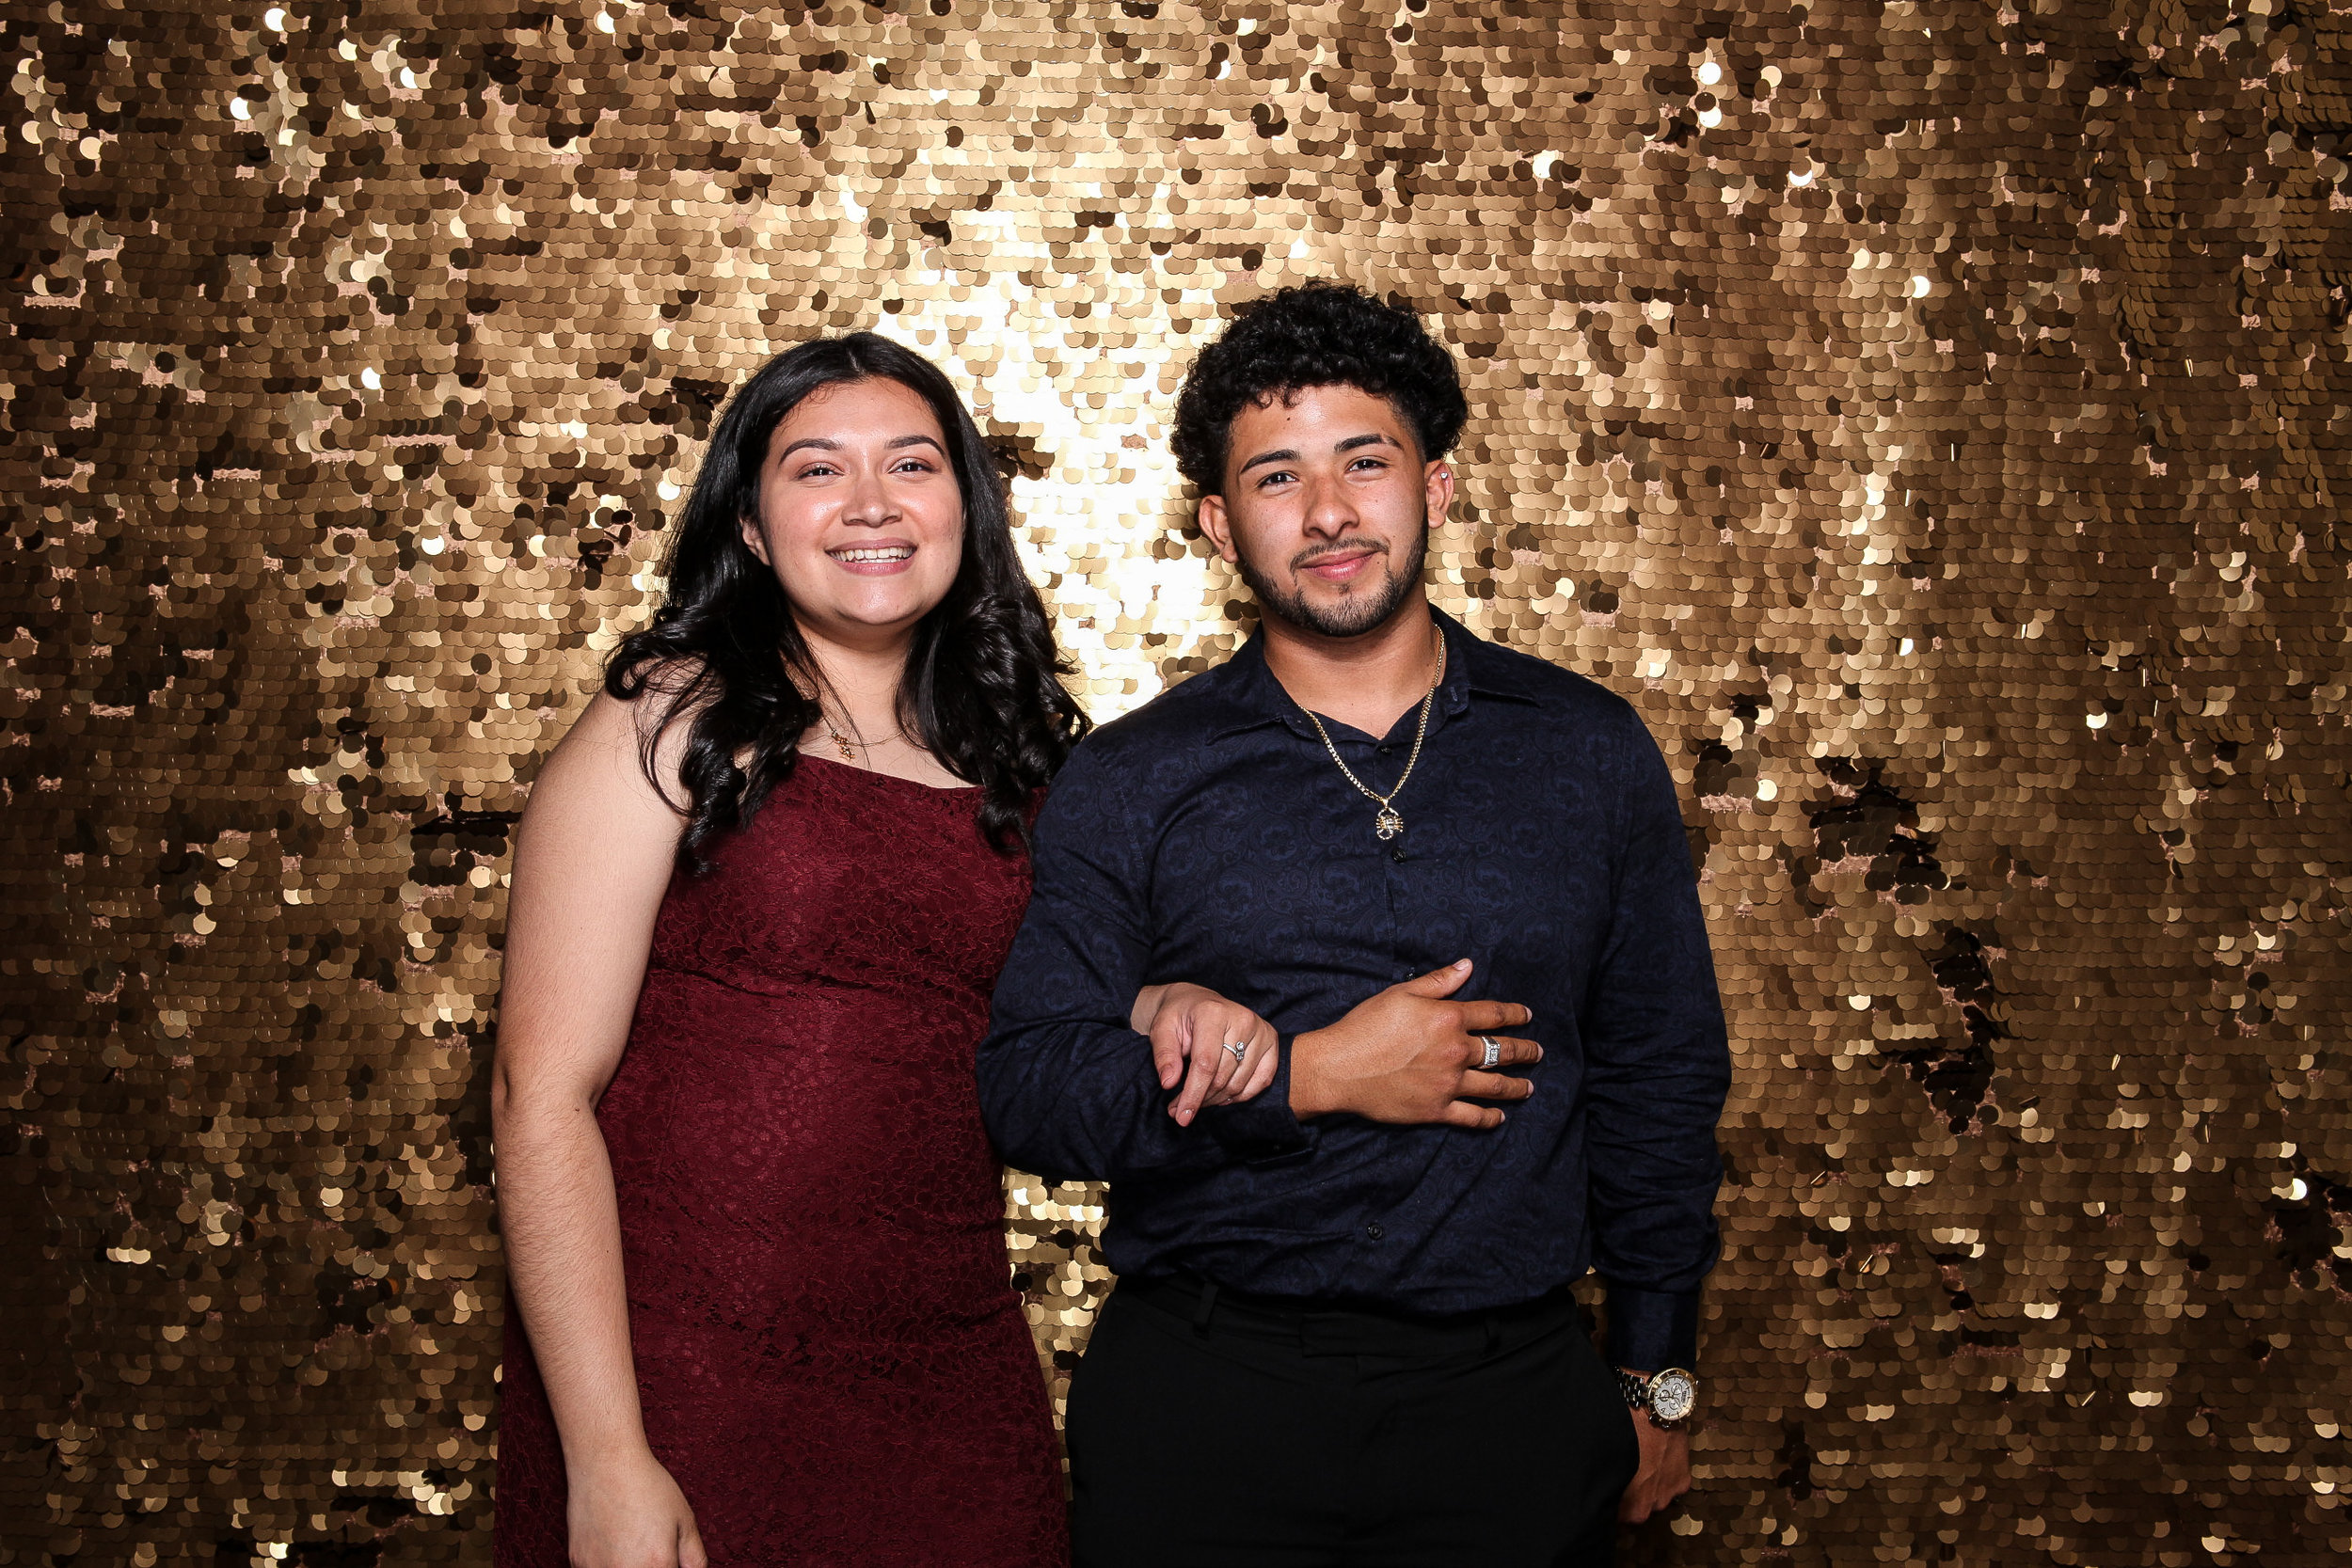 20190503_Adelphi_Senior_Formal-352.jpg